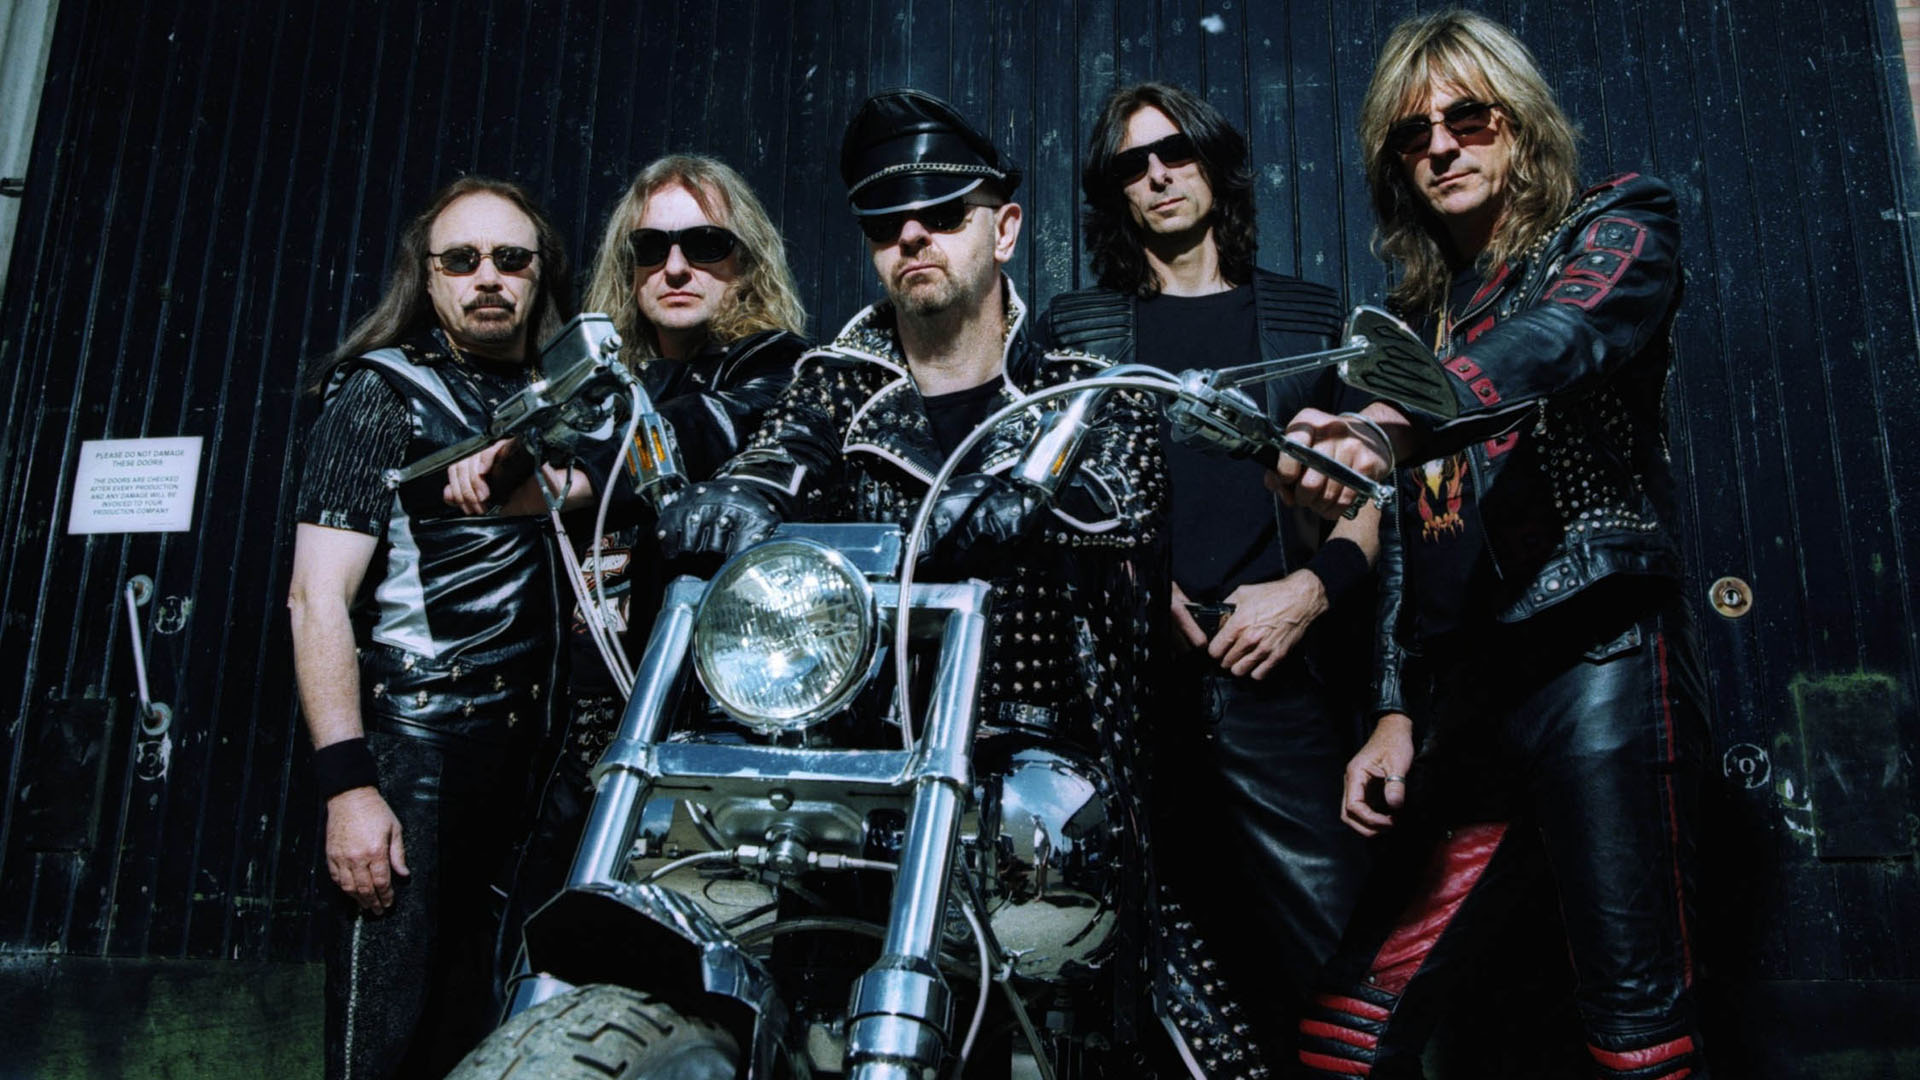 March Of The Damned av Judas Priest